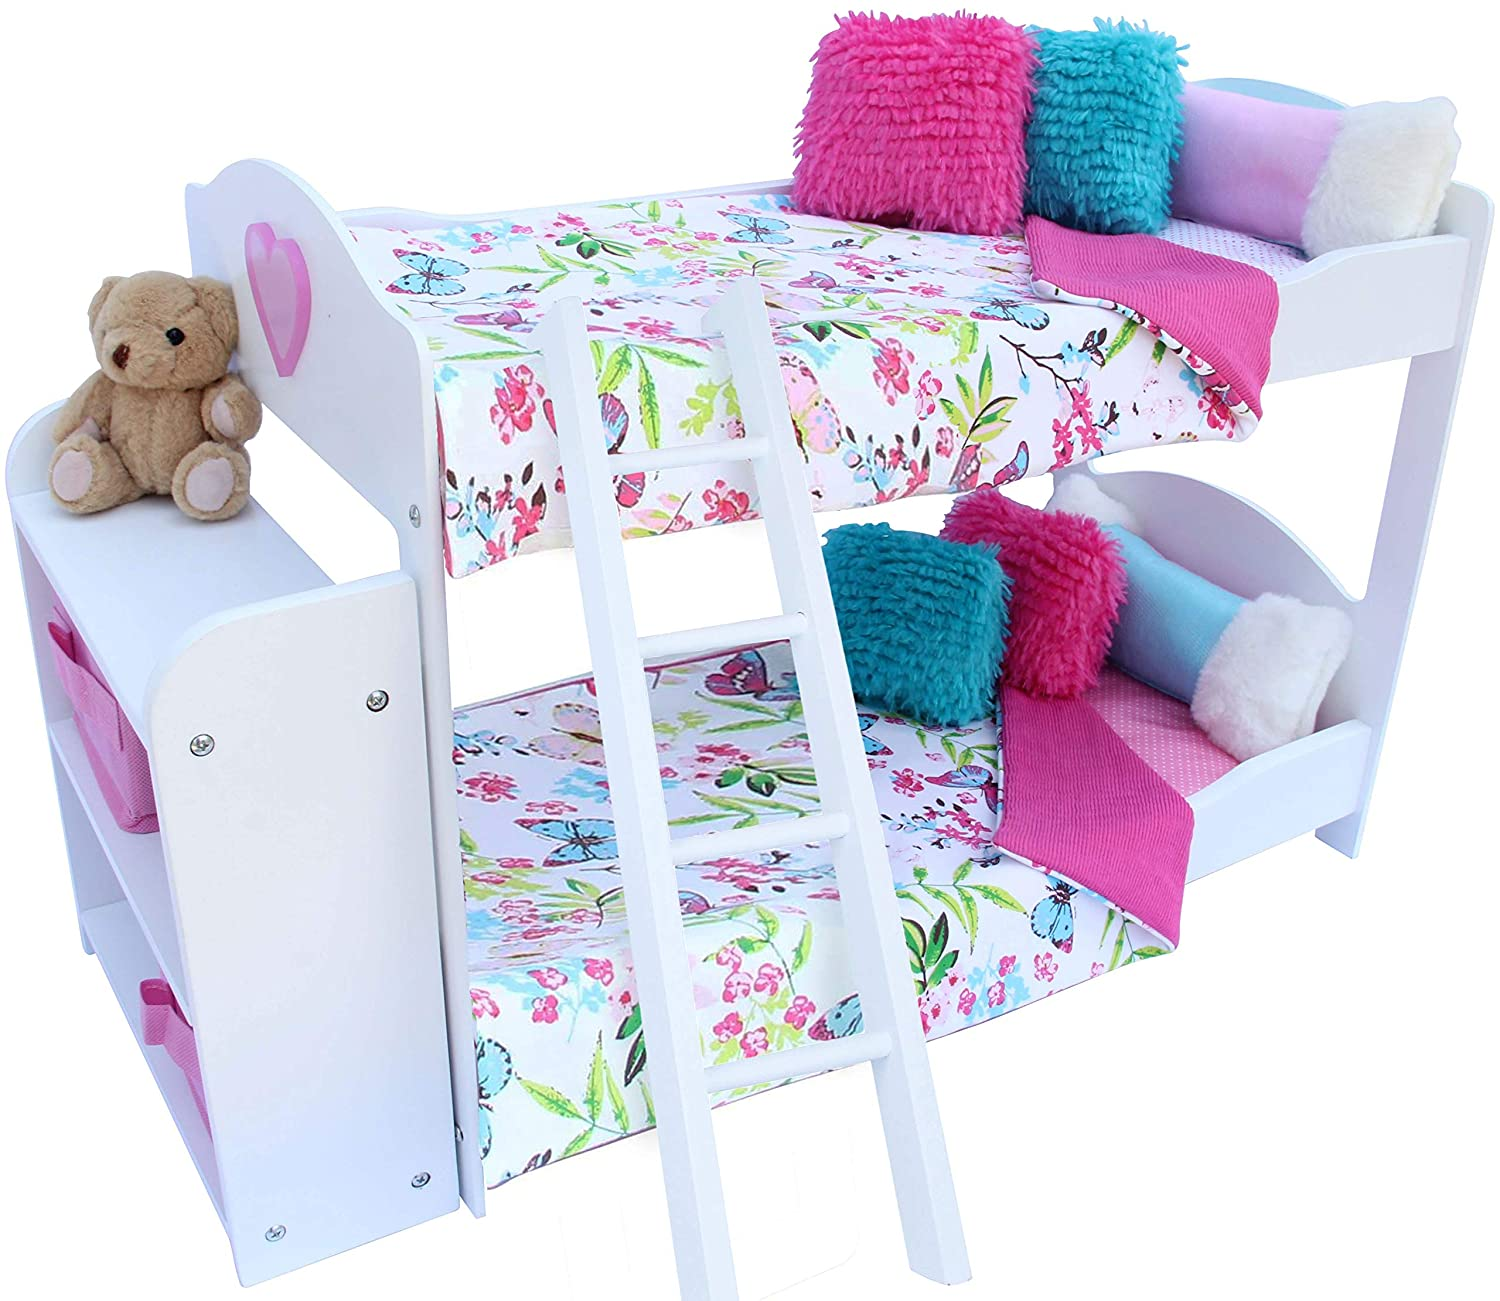 Furniture Compatible With American Girl Doll Furniture And Accessories Pzas Toys Doll Bunk Bed Teddy Bear Doll Bunk Bed For 18 Inch Dolls Complete With Linens And Shelves Pajamas Toys Games